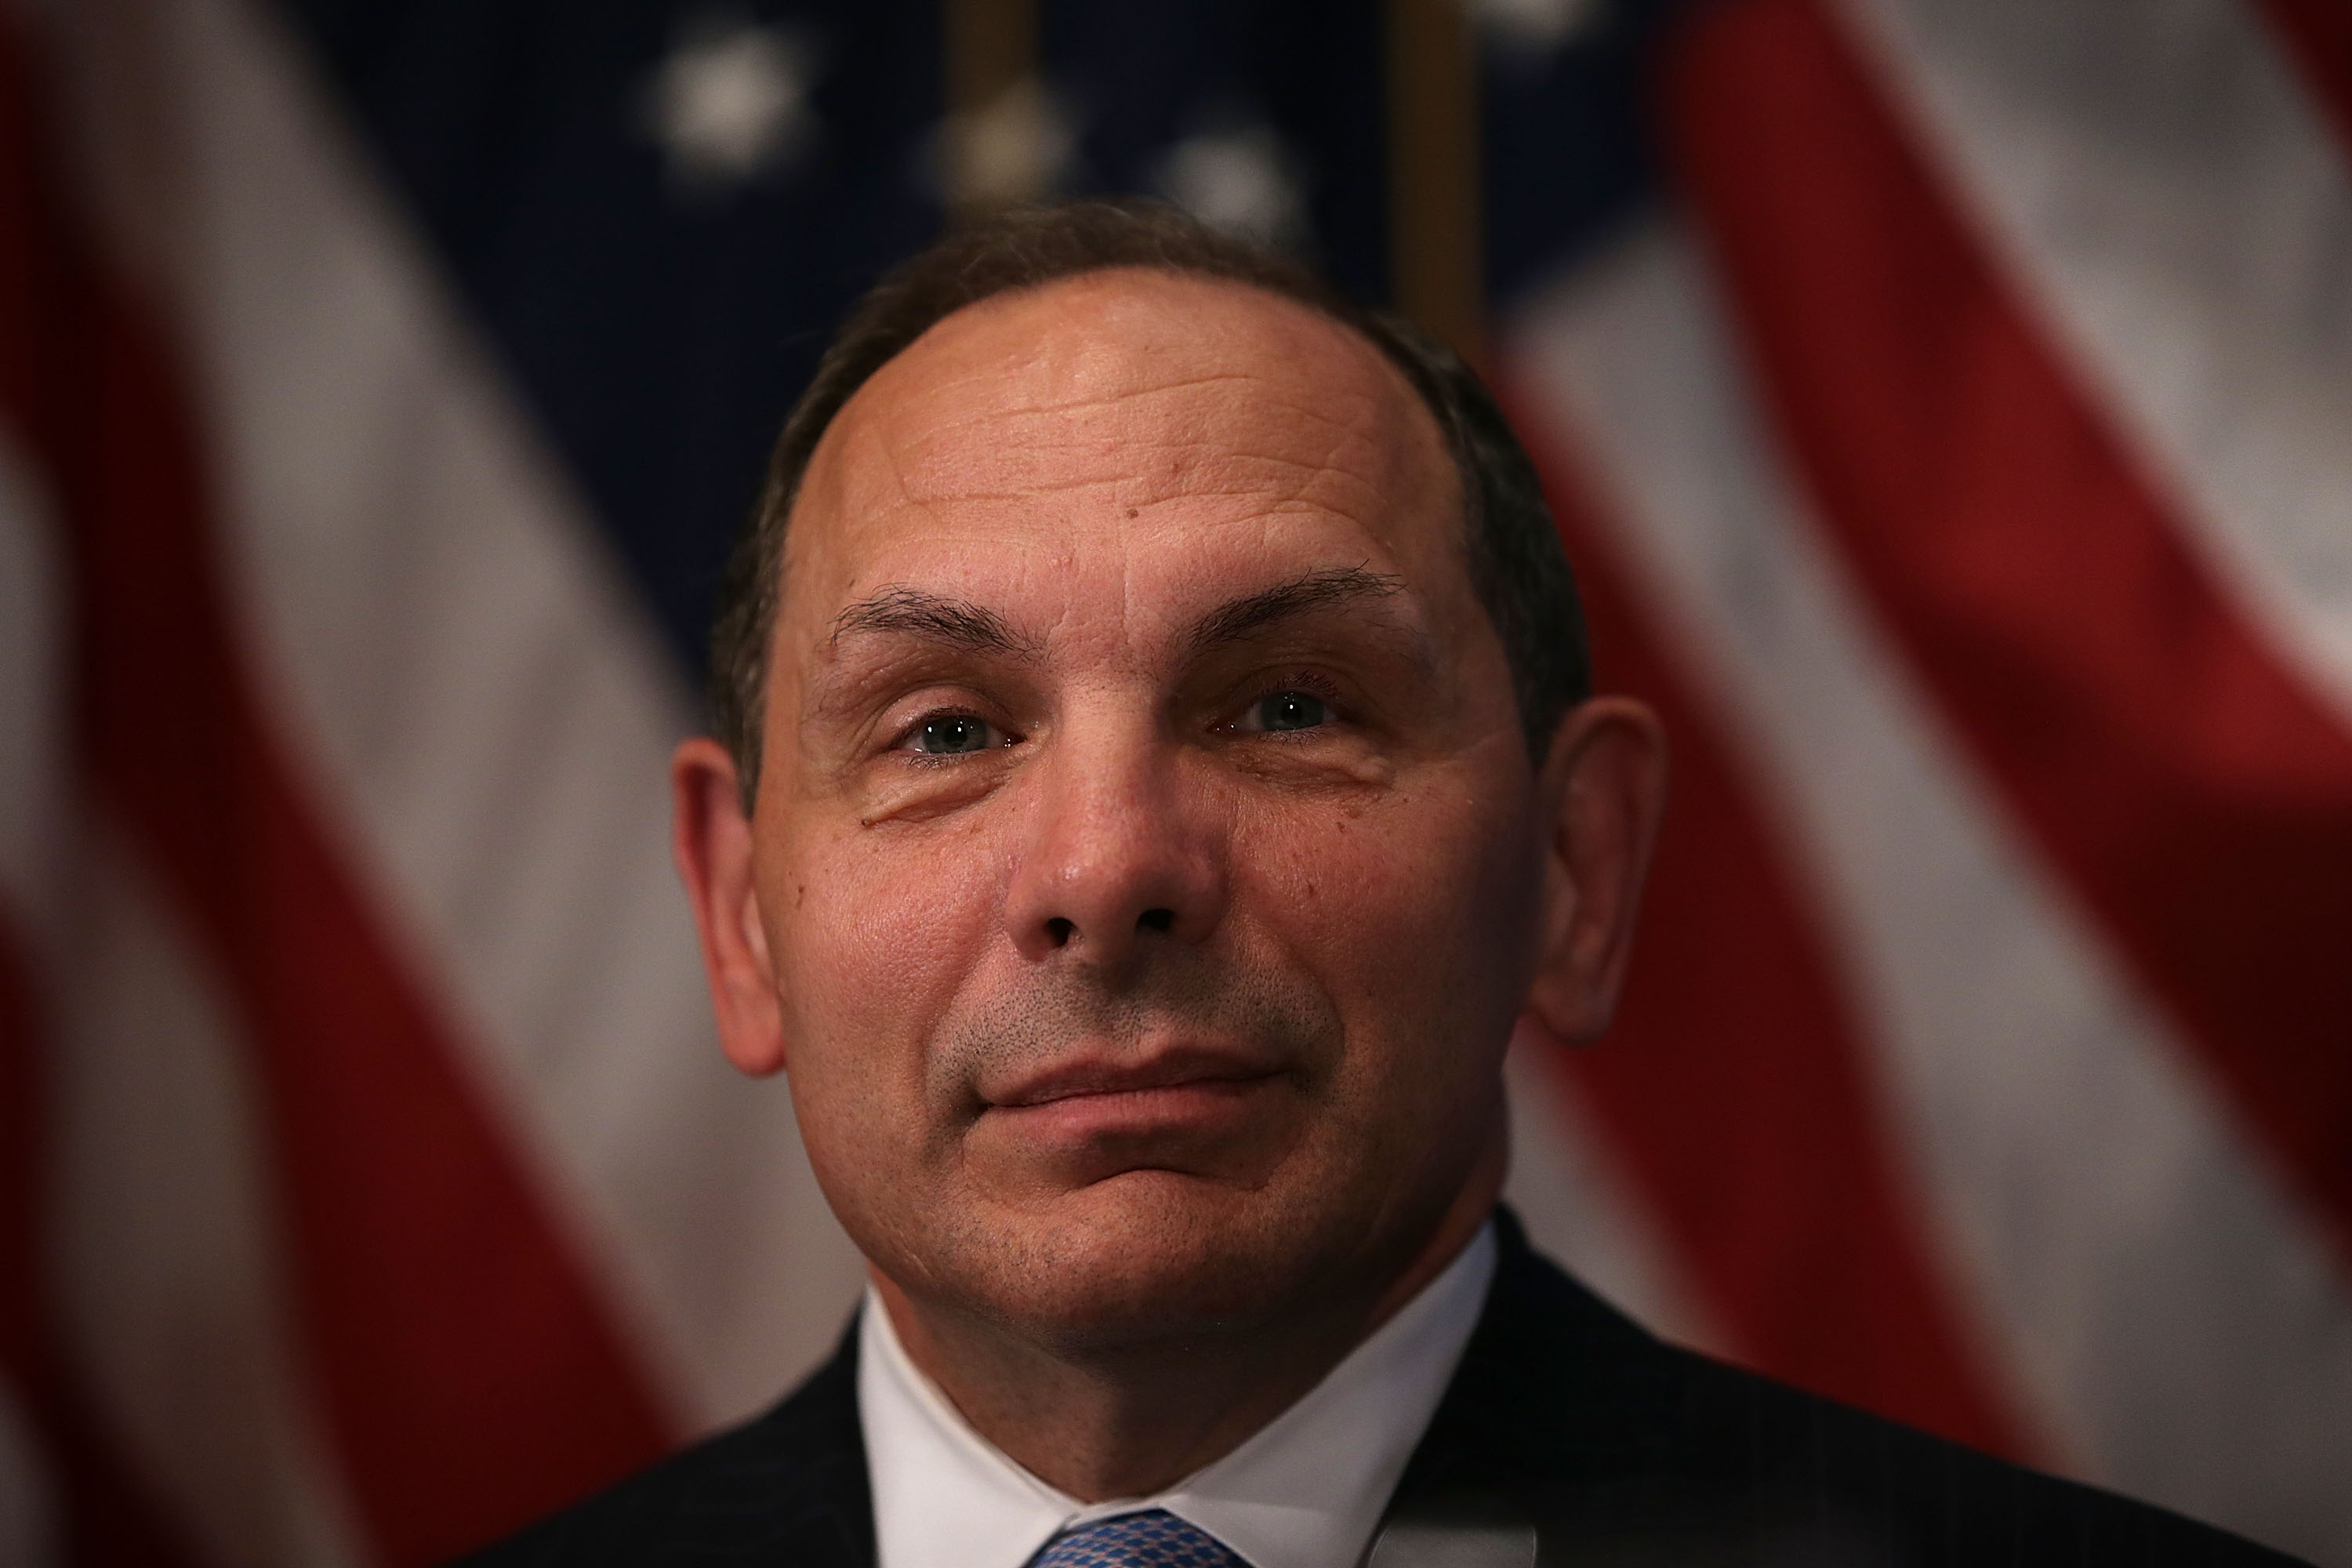 U.S. Secretary of Veterans Affairs Robert McDonald waits to be introduced prior to his address to a Newsmaker Luncheon at the National Press Club November 6, 2015 in Washington, DC.